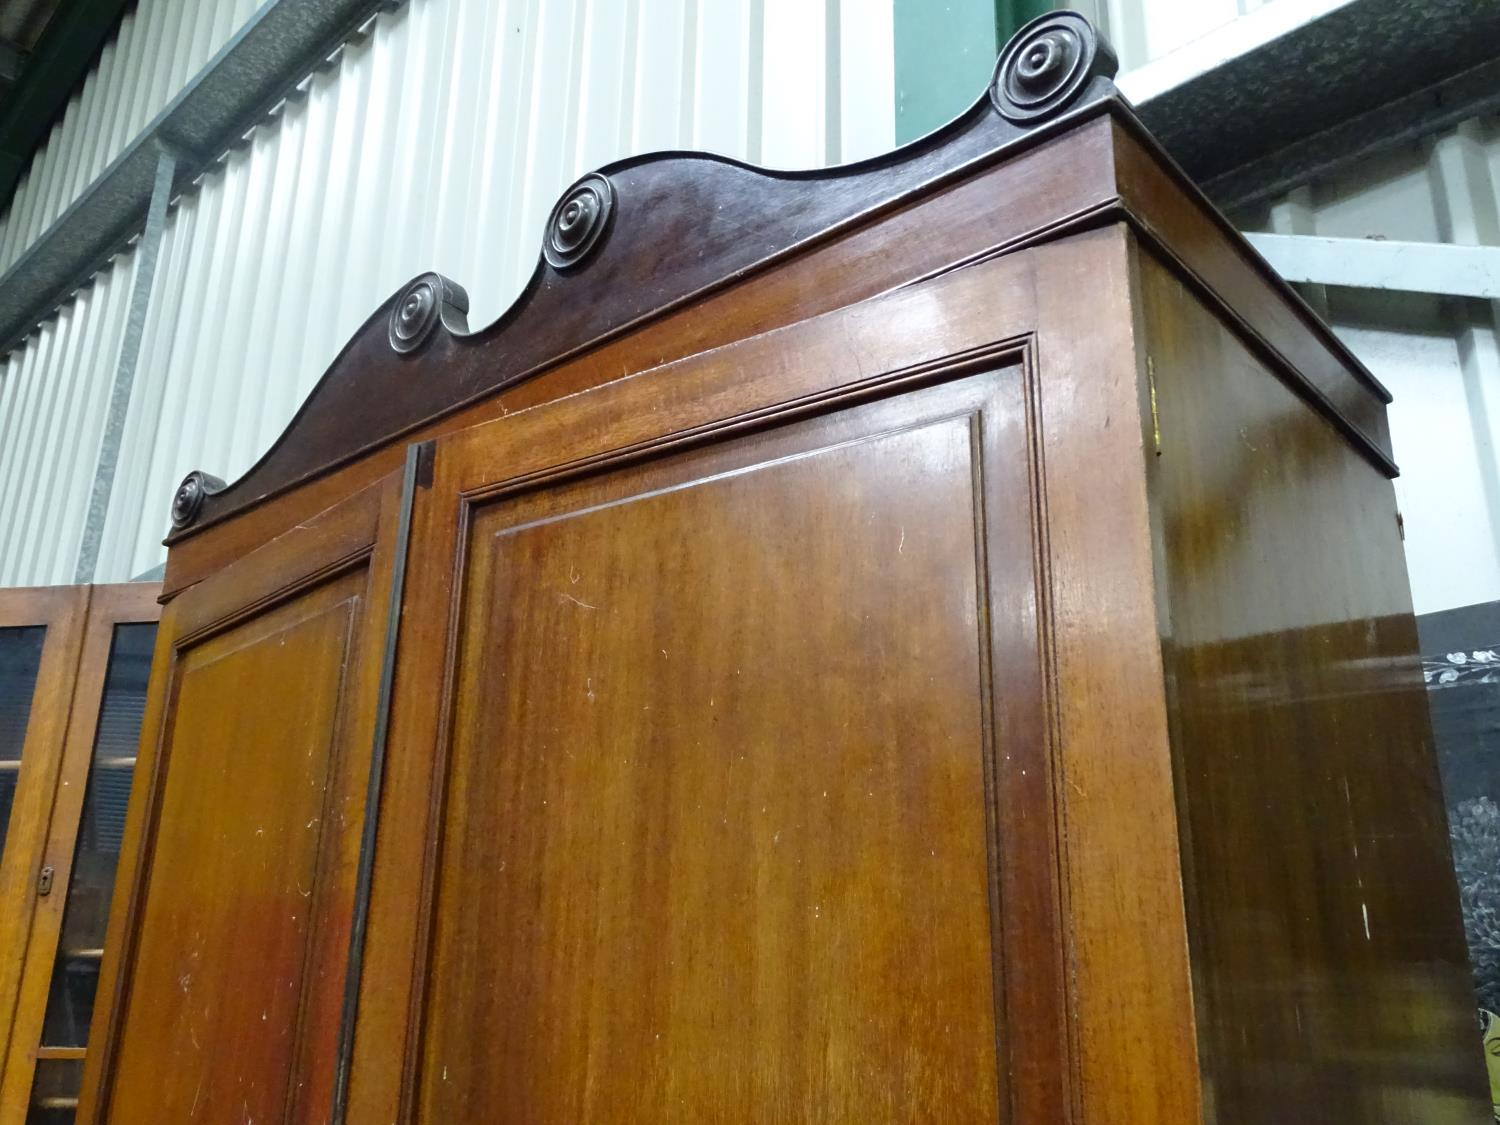 Lot 57 - An Edwardian wardrobe CONDITION: Please Note - we do not make reference to the